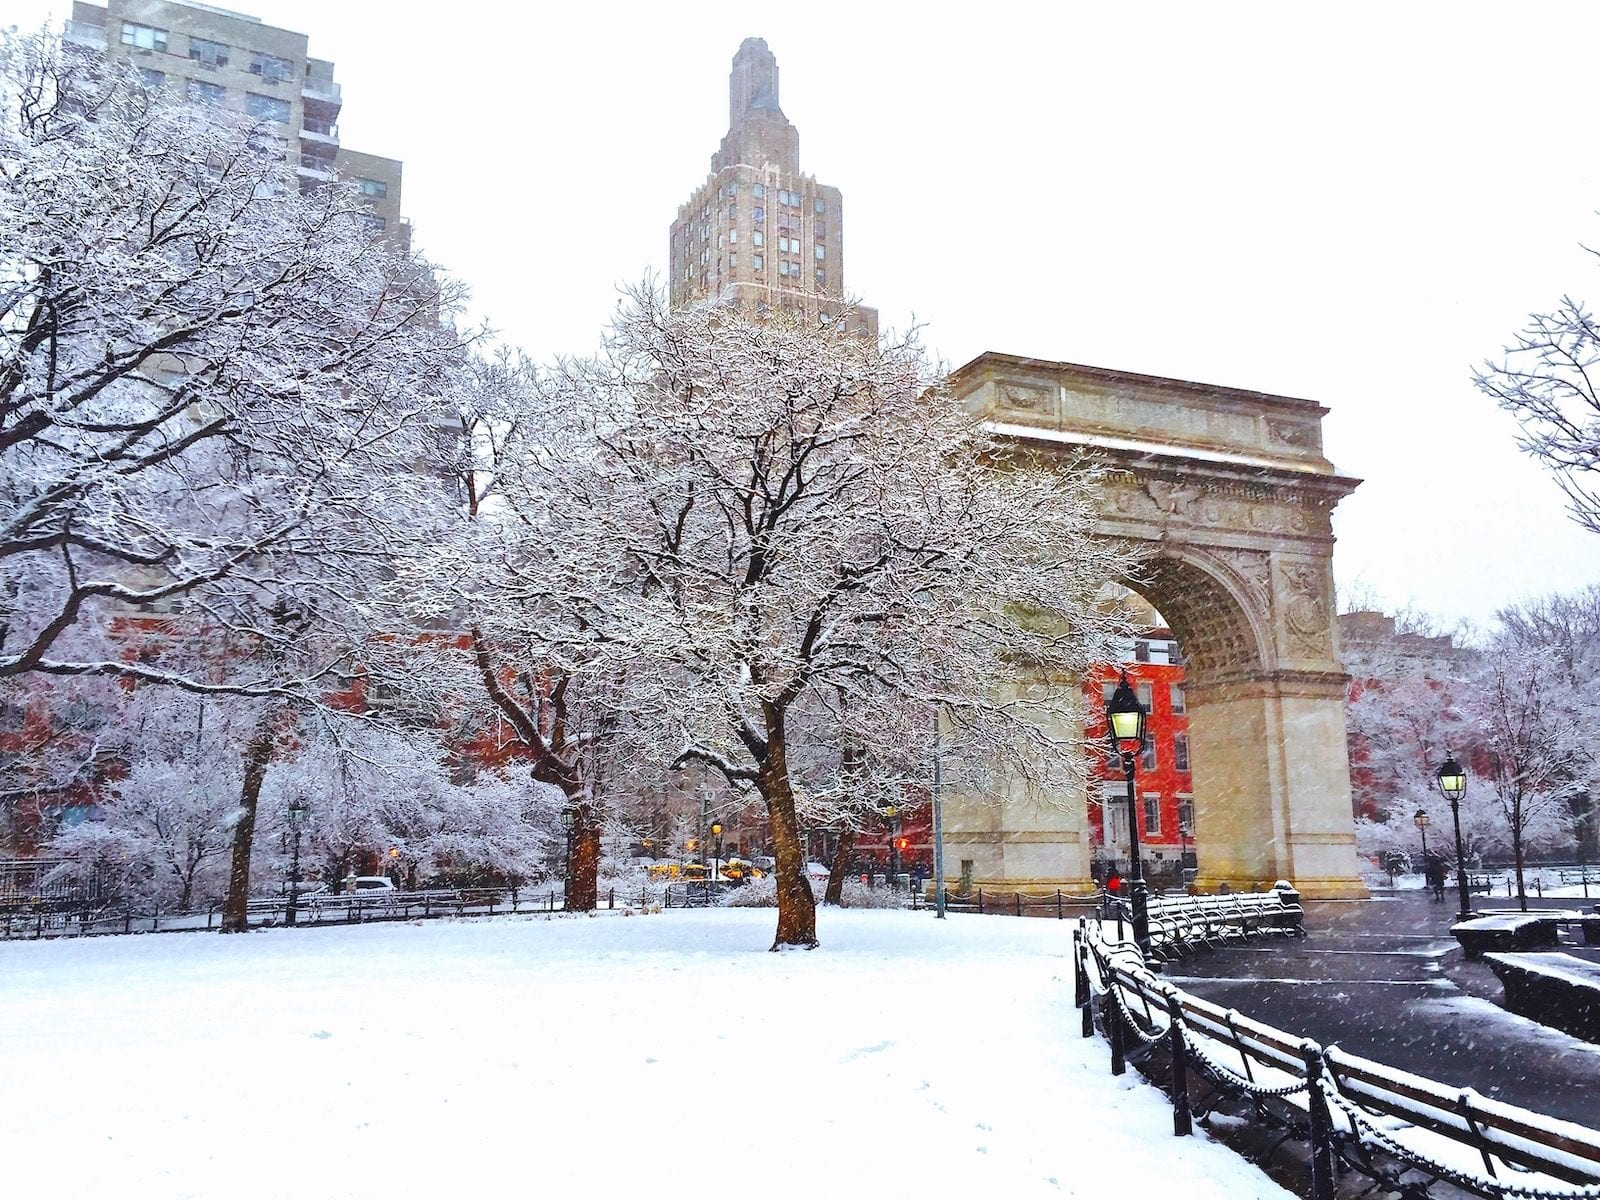 Washington Square Park in snow, New York City, USA